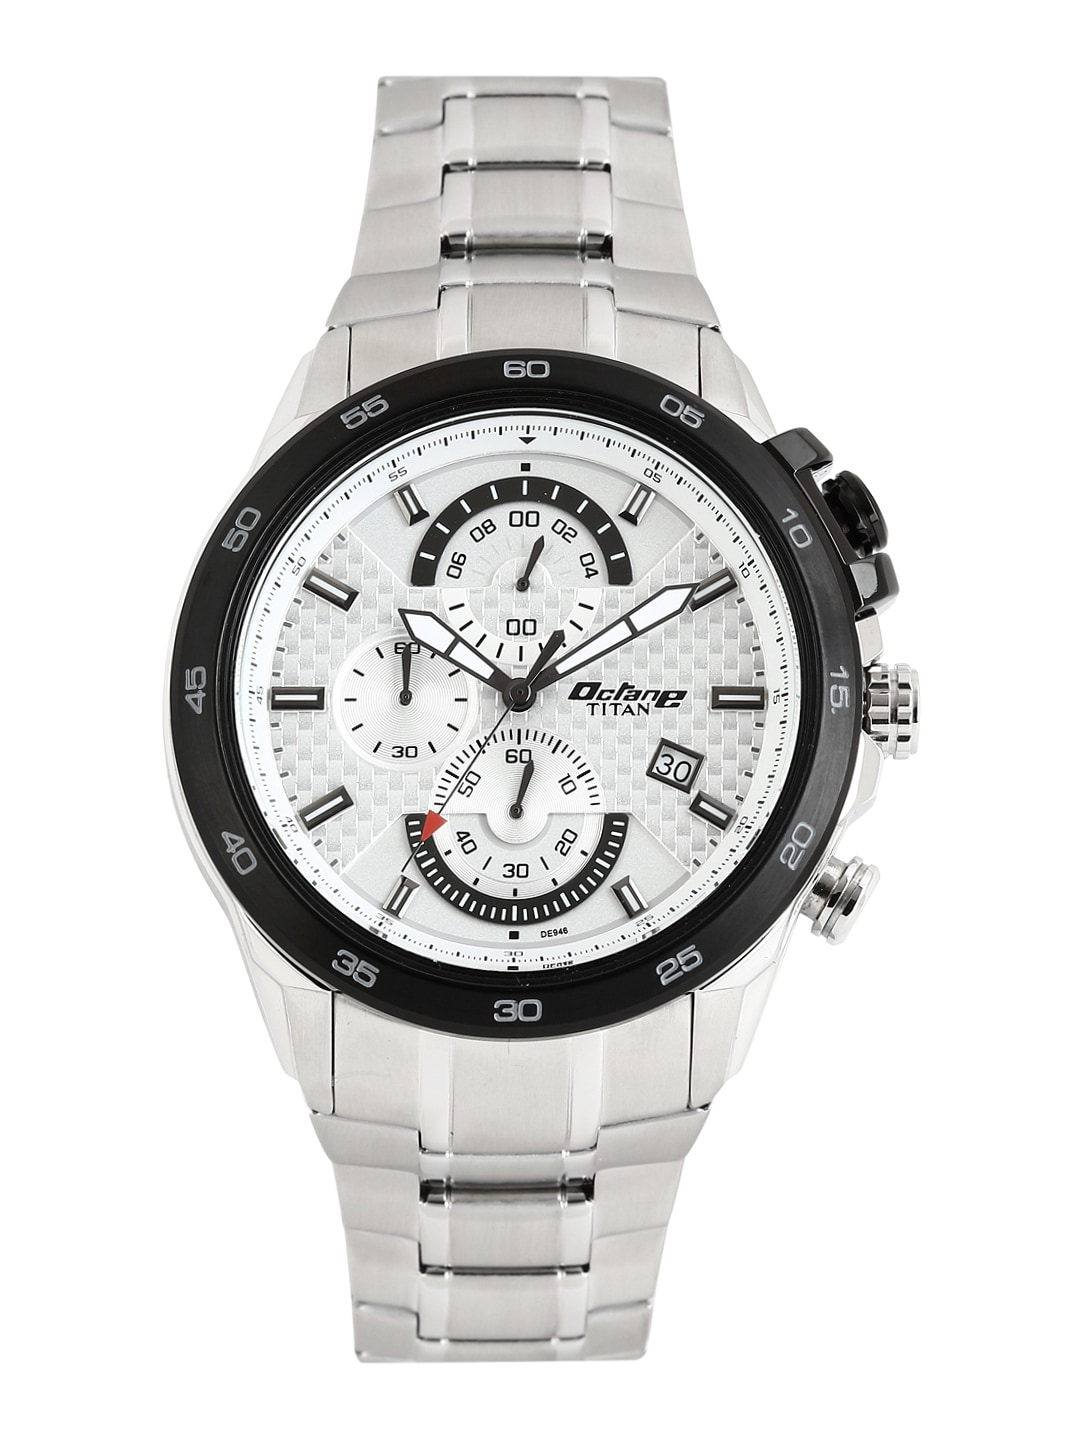 Octane by Titan Men Silver-Toned Dial Chronograph Watch 90046KM01